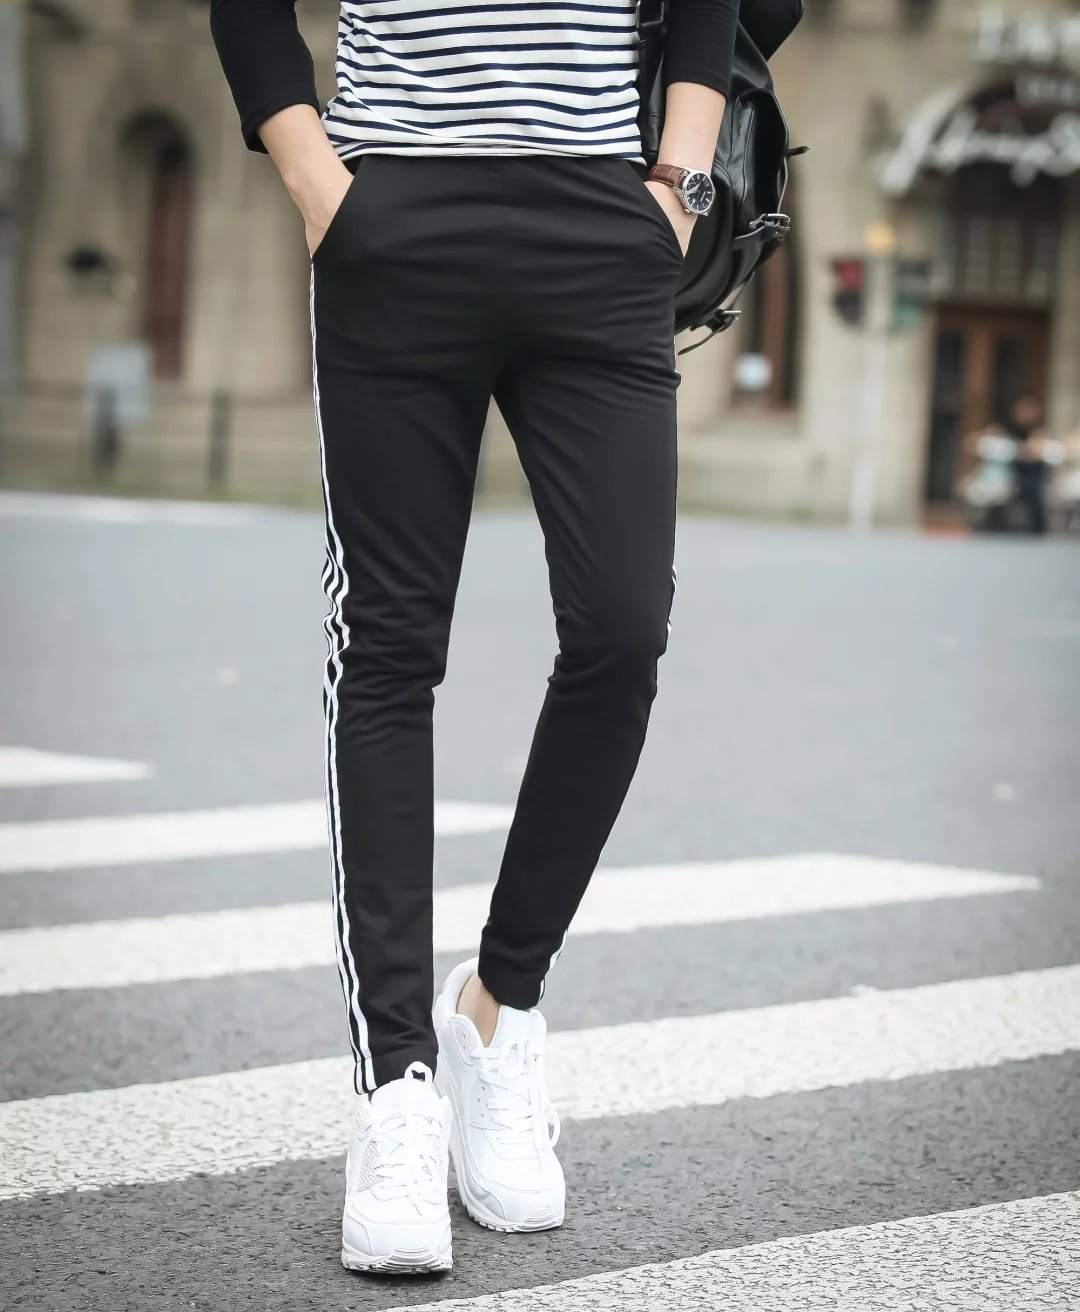 2020 Spring And Autumn New Style Three Bars MEN'S Sports Pants New Style Casual Trousers Men's Korean-style Harem Pants Sweatpan